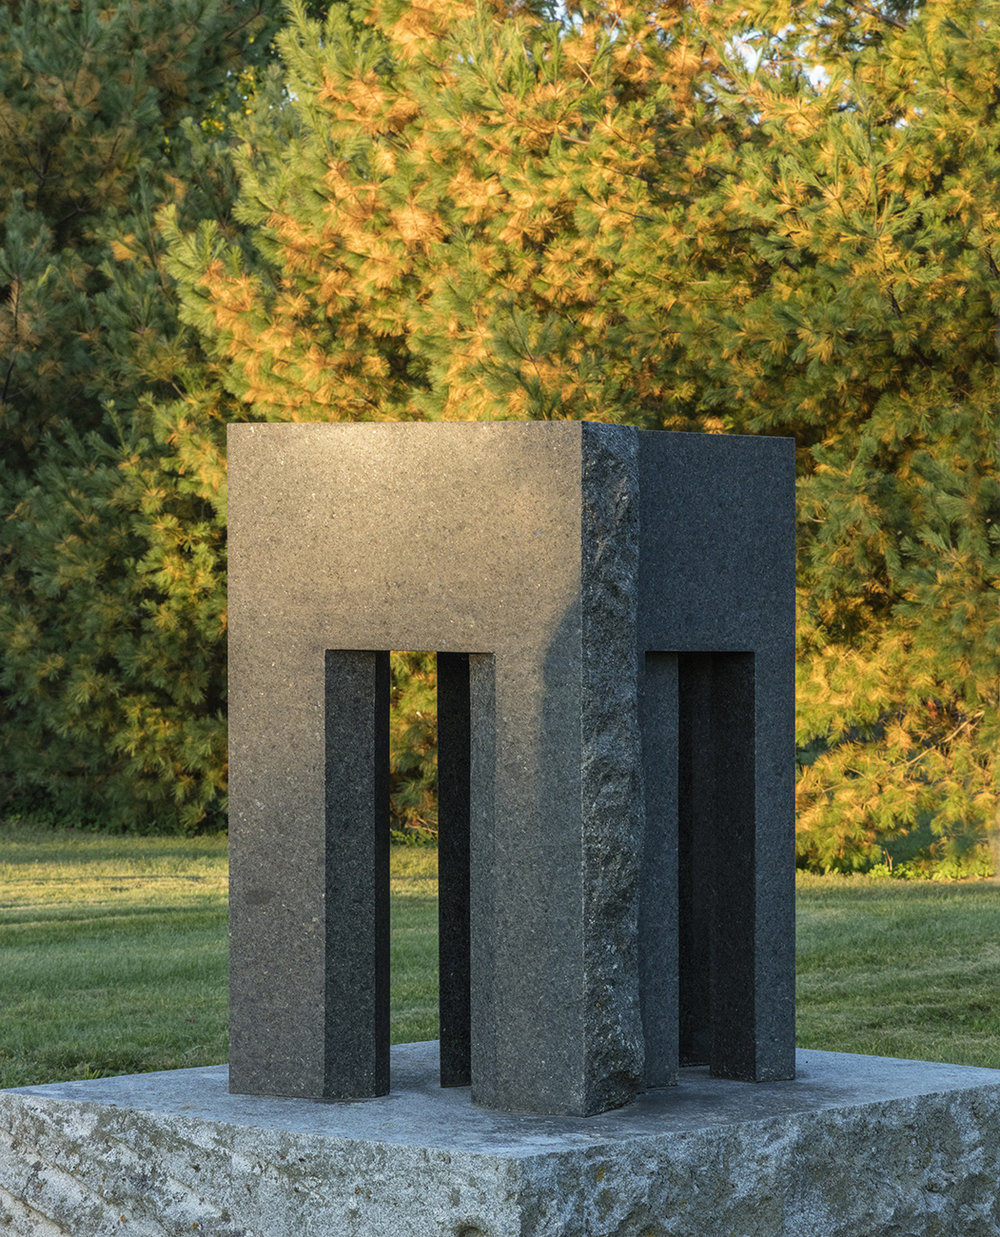 Fini/Infini  (2003)   Granite, 160 x 130 x 173 cm, collection de l'artiste. photo : Richard-Max Tremblay